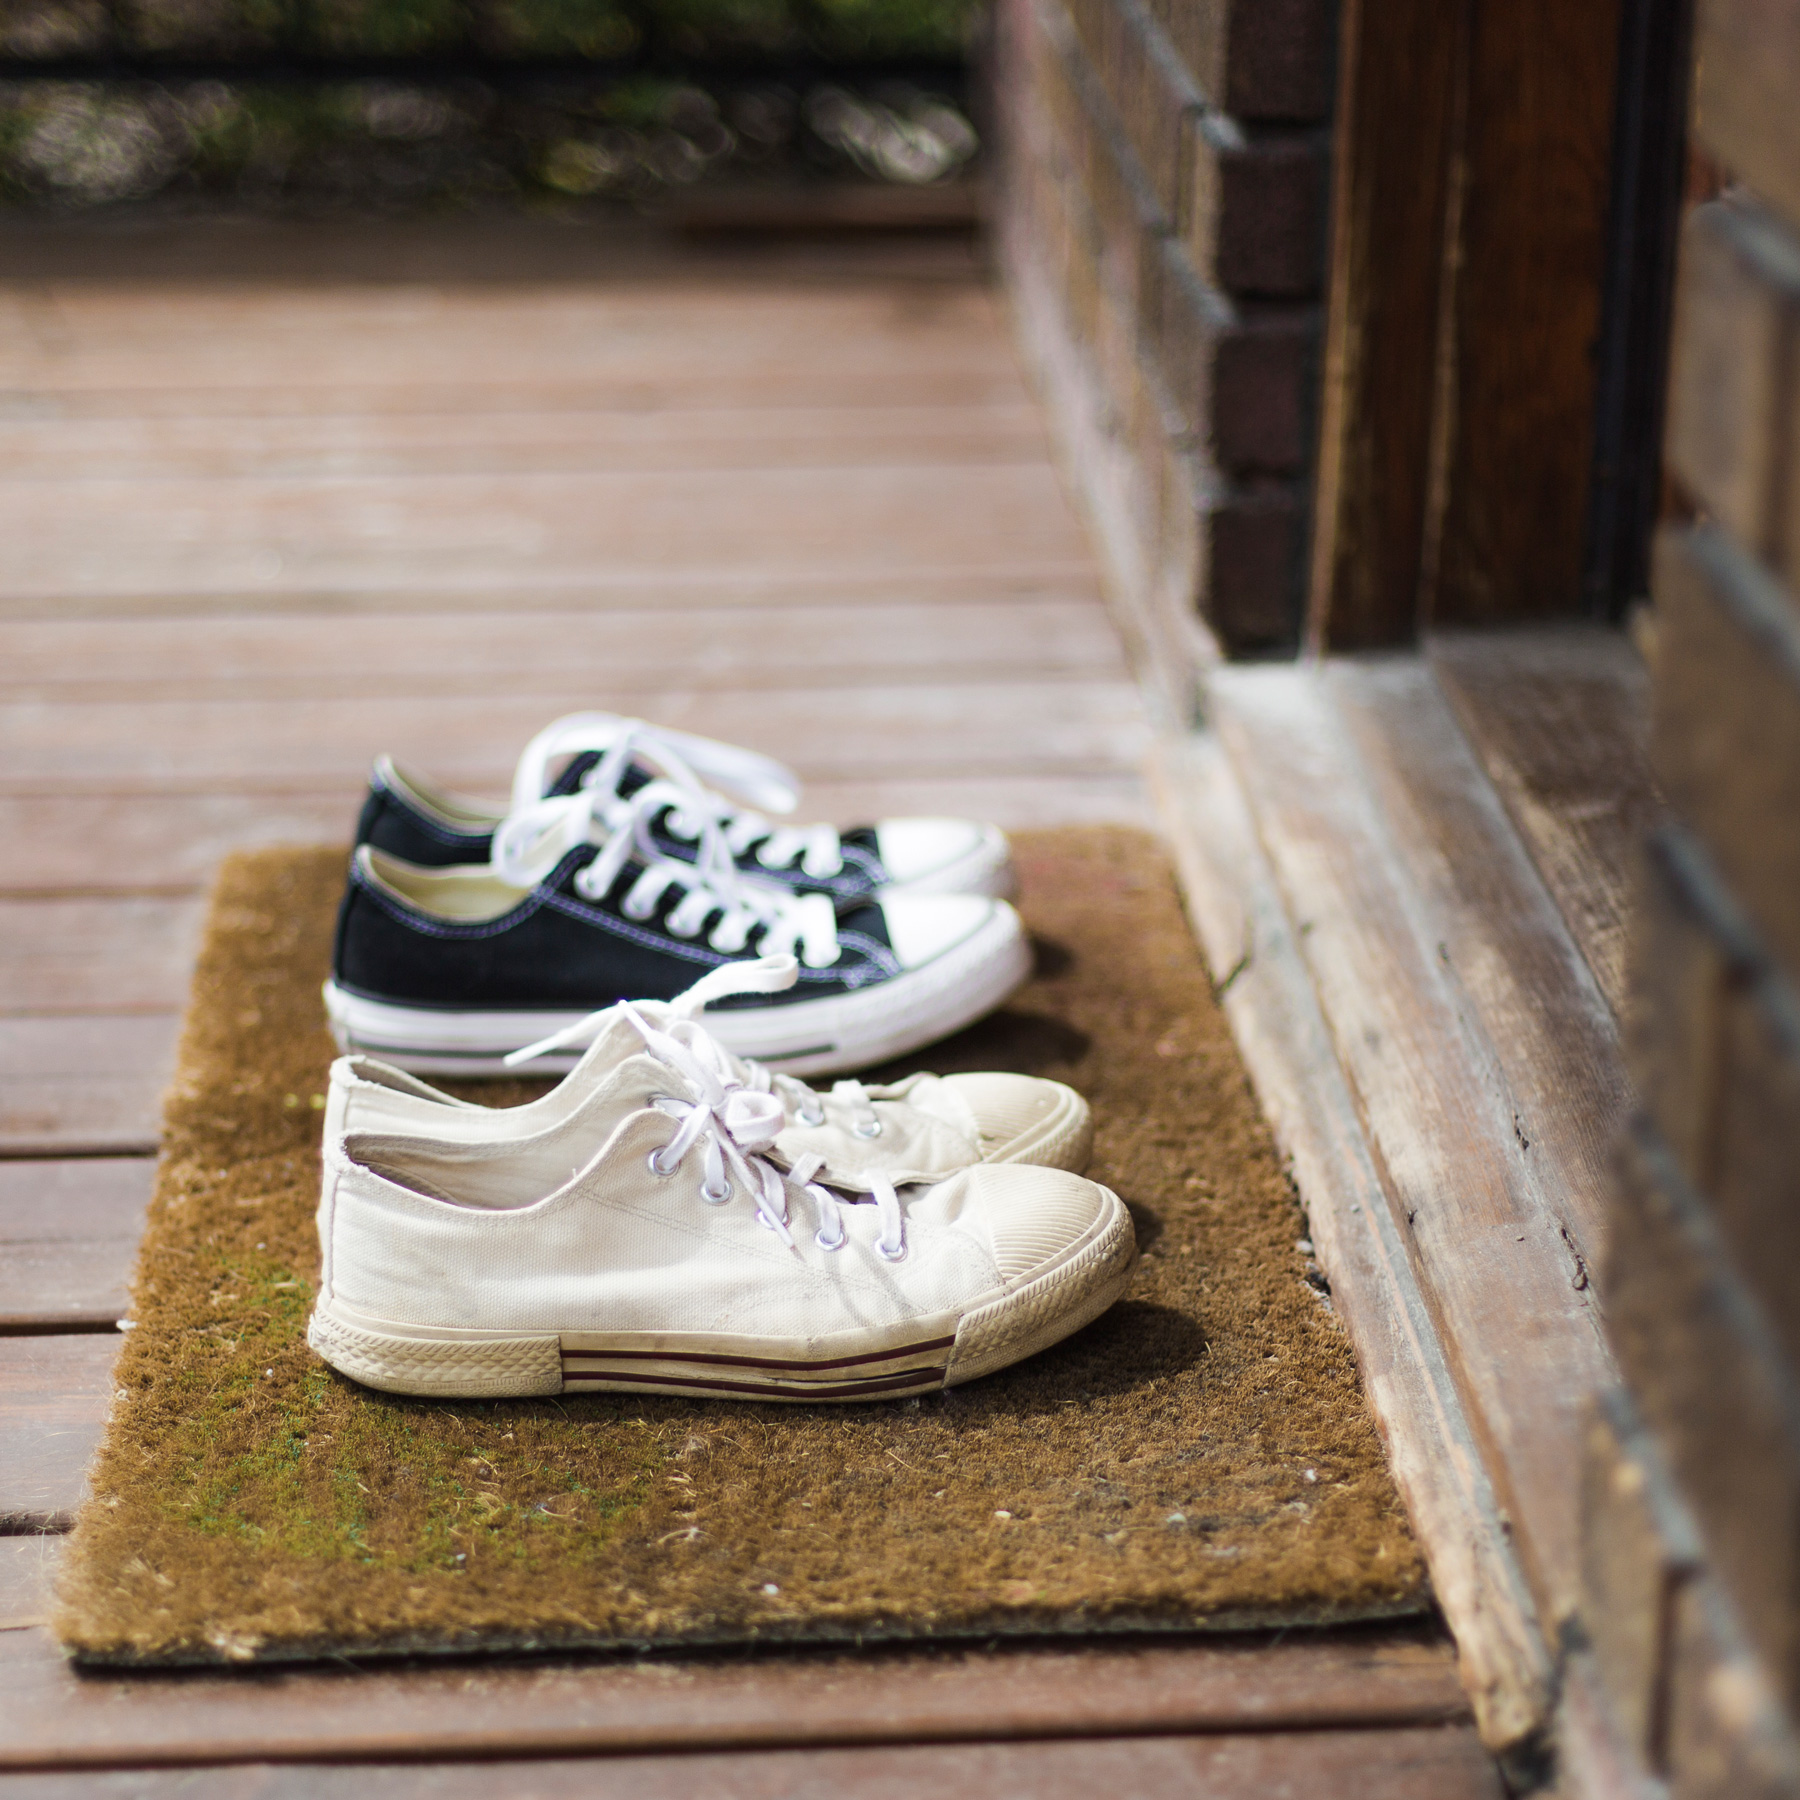 10 Ways to Make Your Home Greener: sneakers outside on the doormat